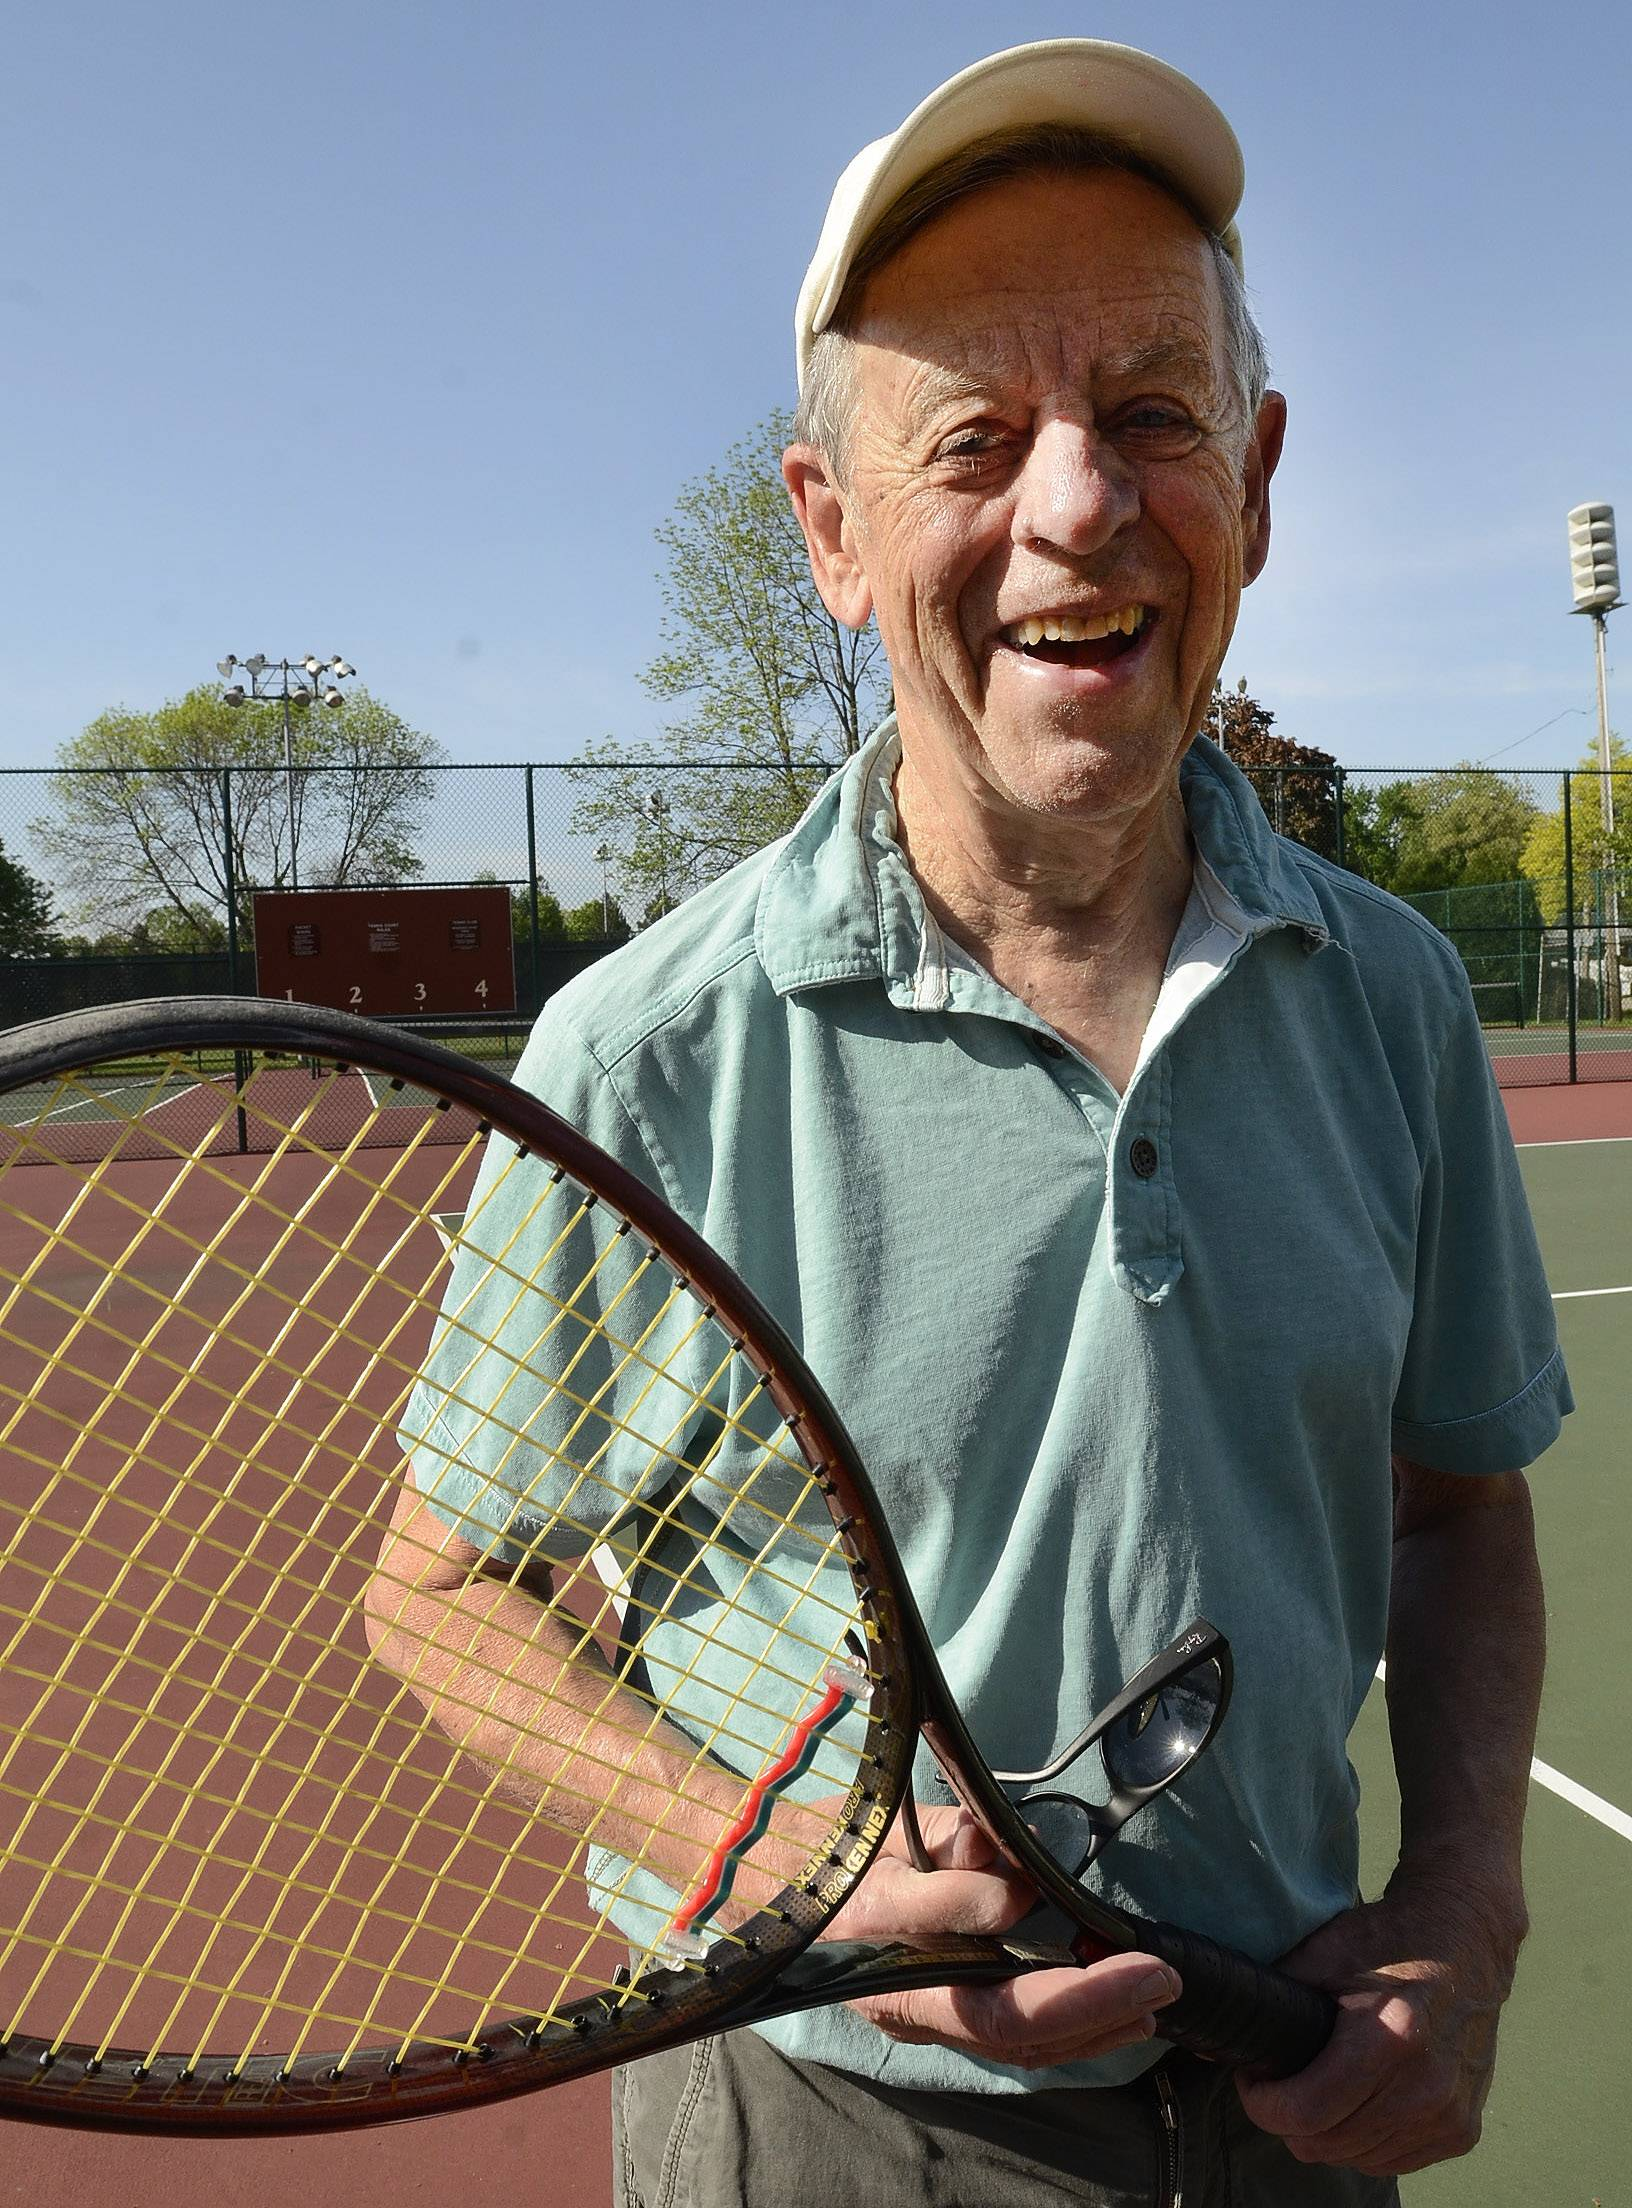 Jim Mooney of Arlington Heights tried retiring to a warmer climate. However, he eventually moved back to the Chicago area.